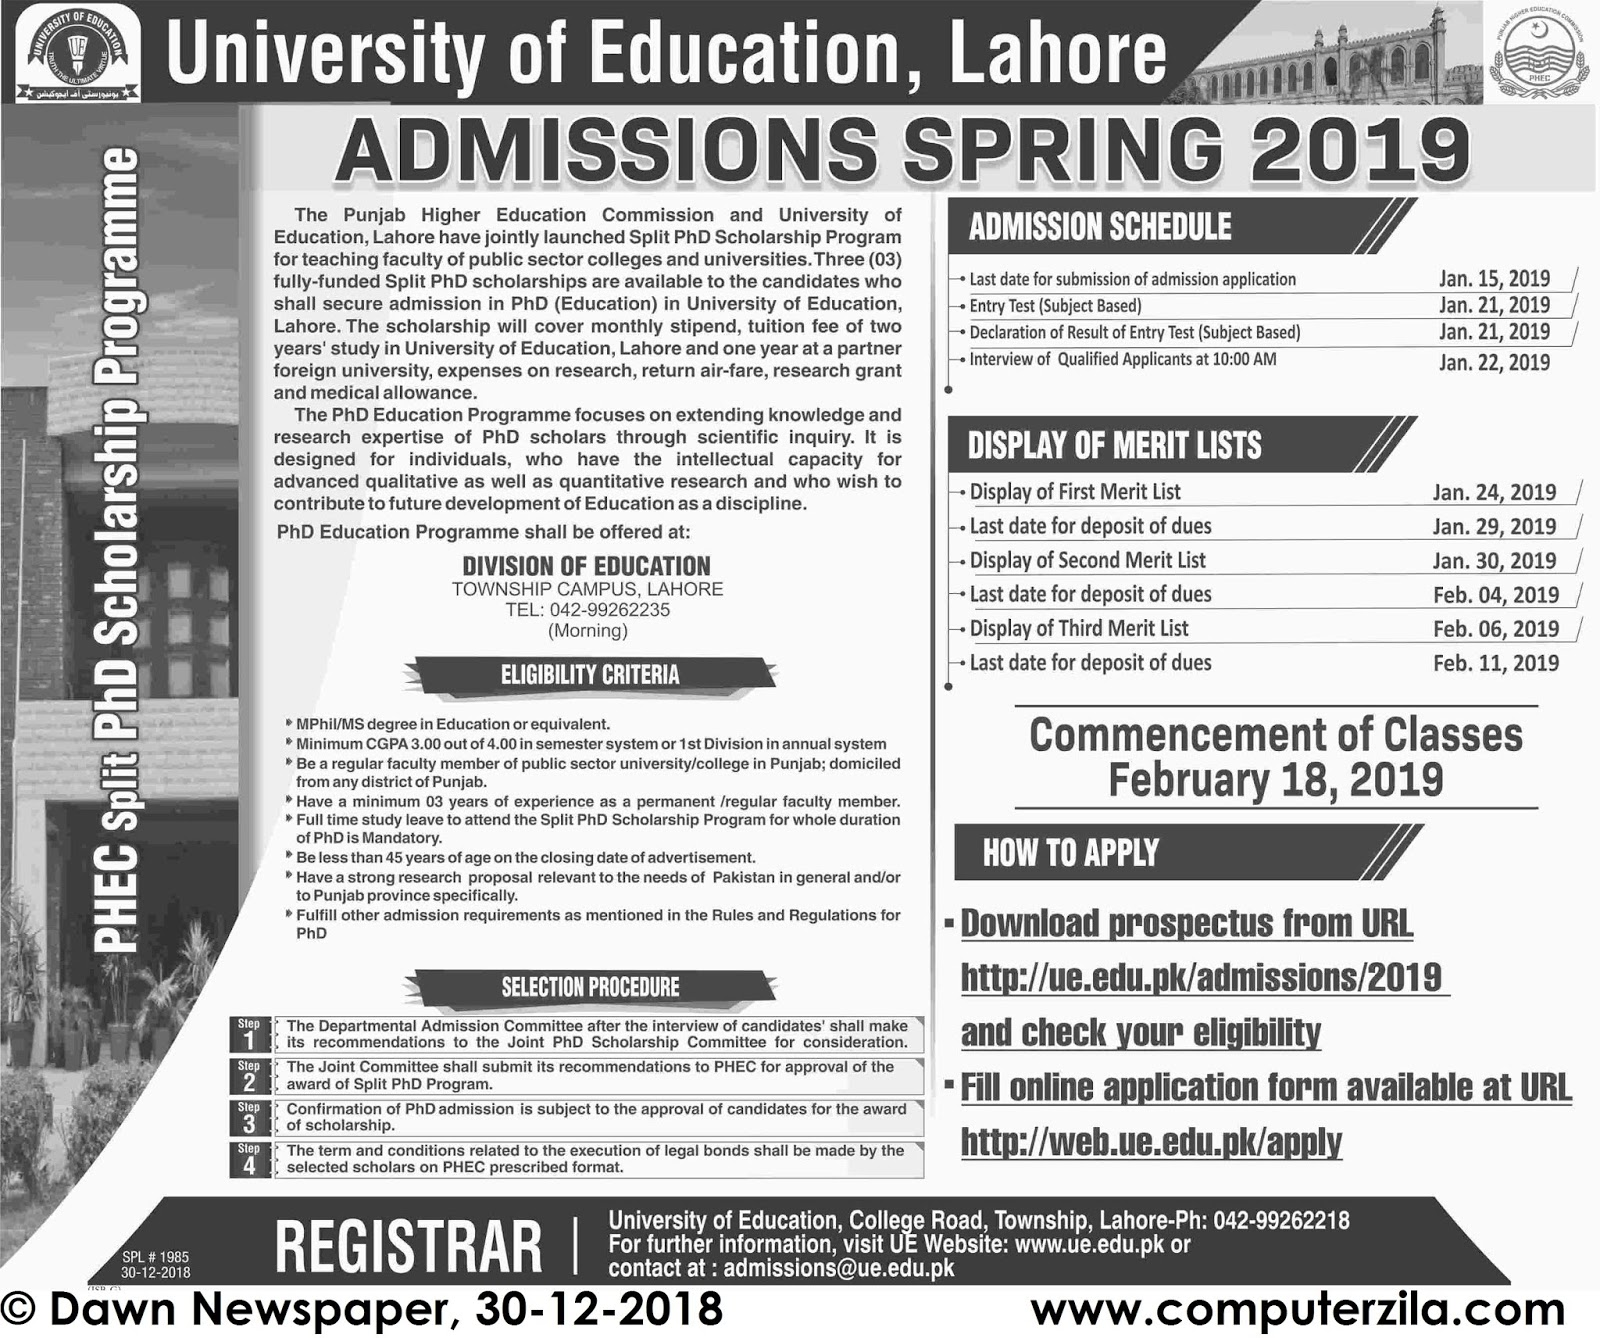 Admissions Open For Spring 2019 At UE Lahore Campus